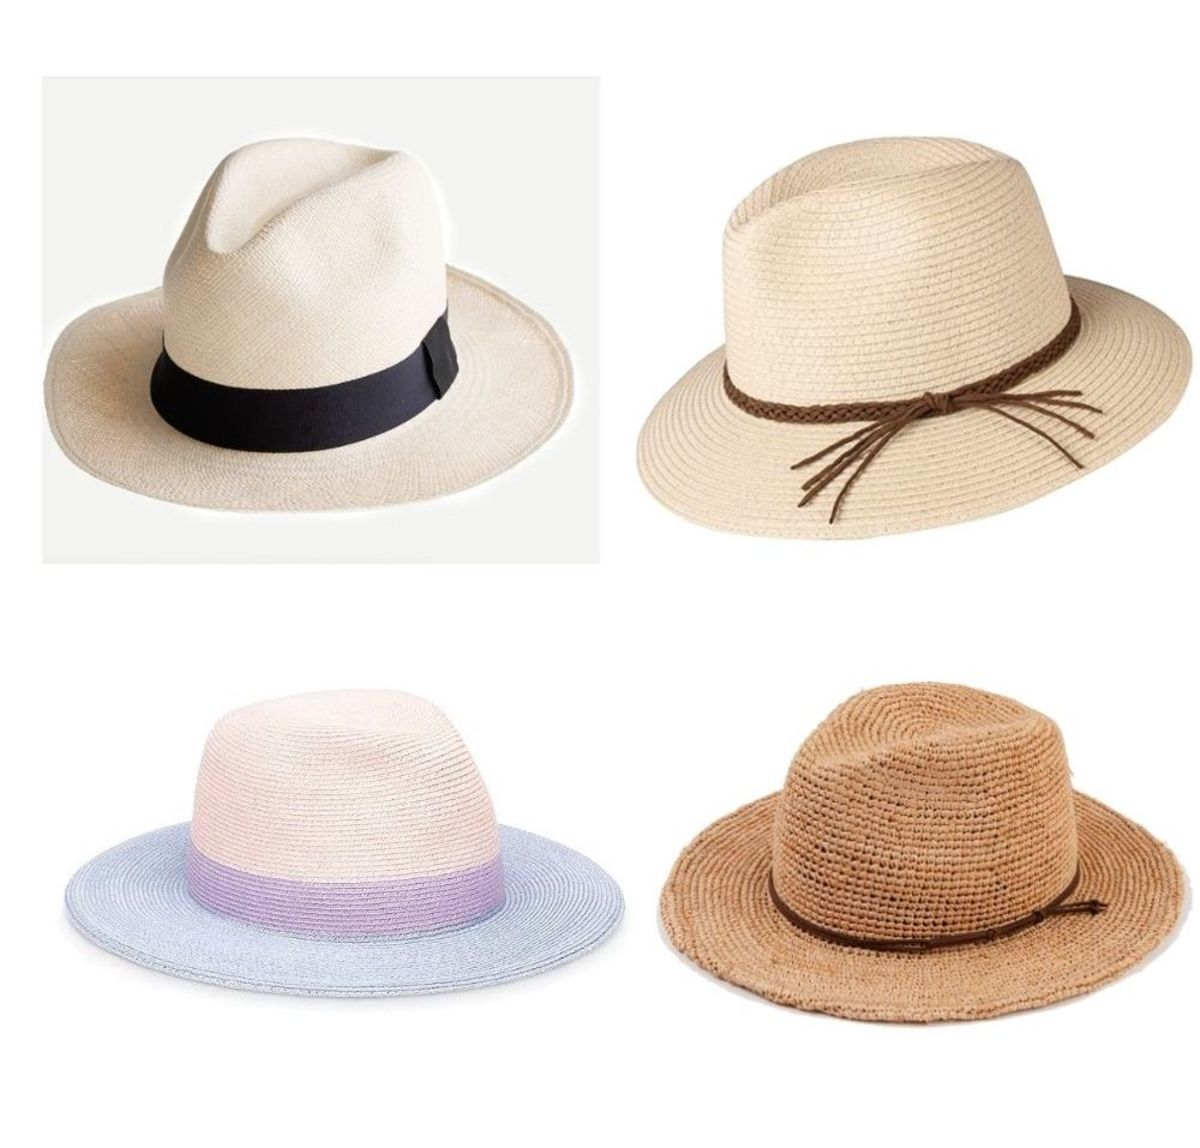 Cute Panama Hats to Get You Through Summer